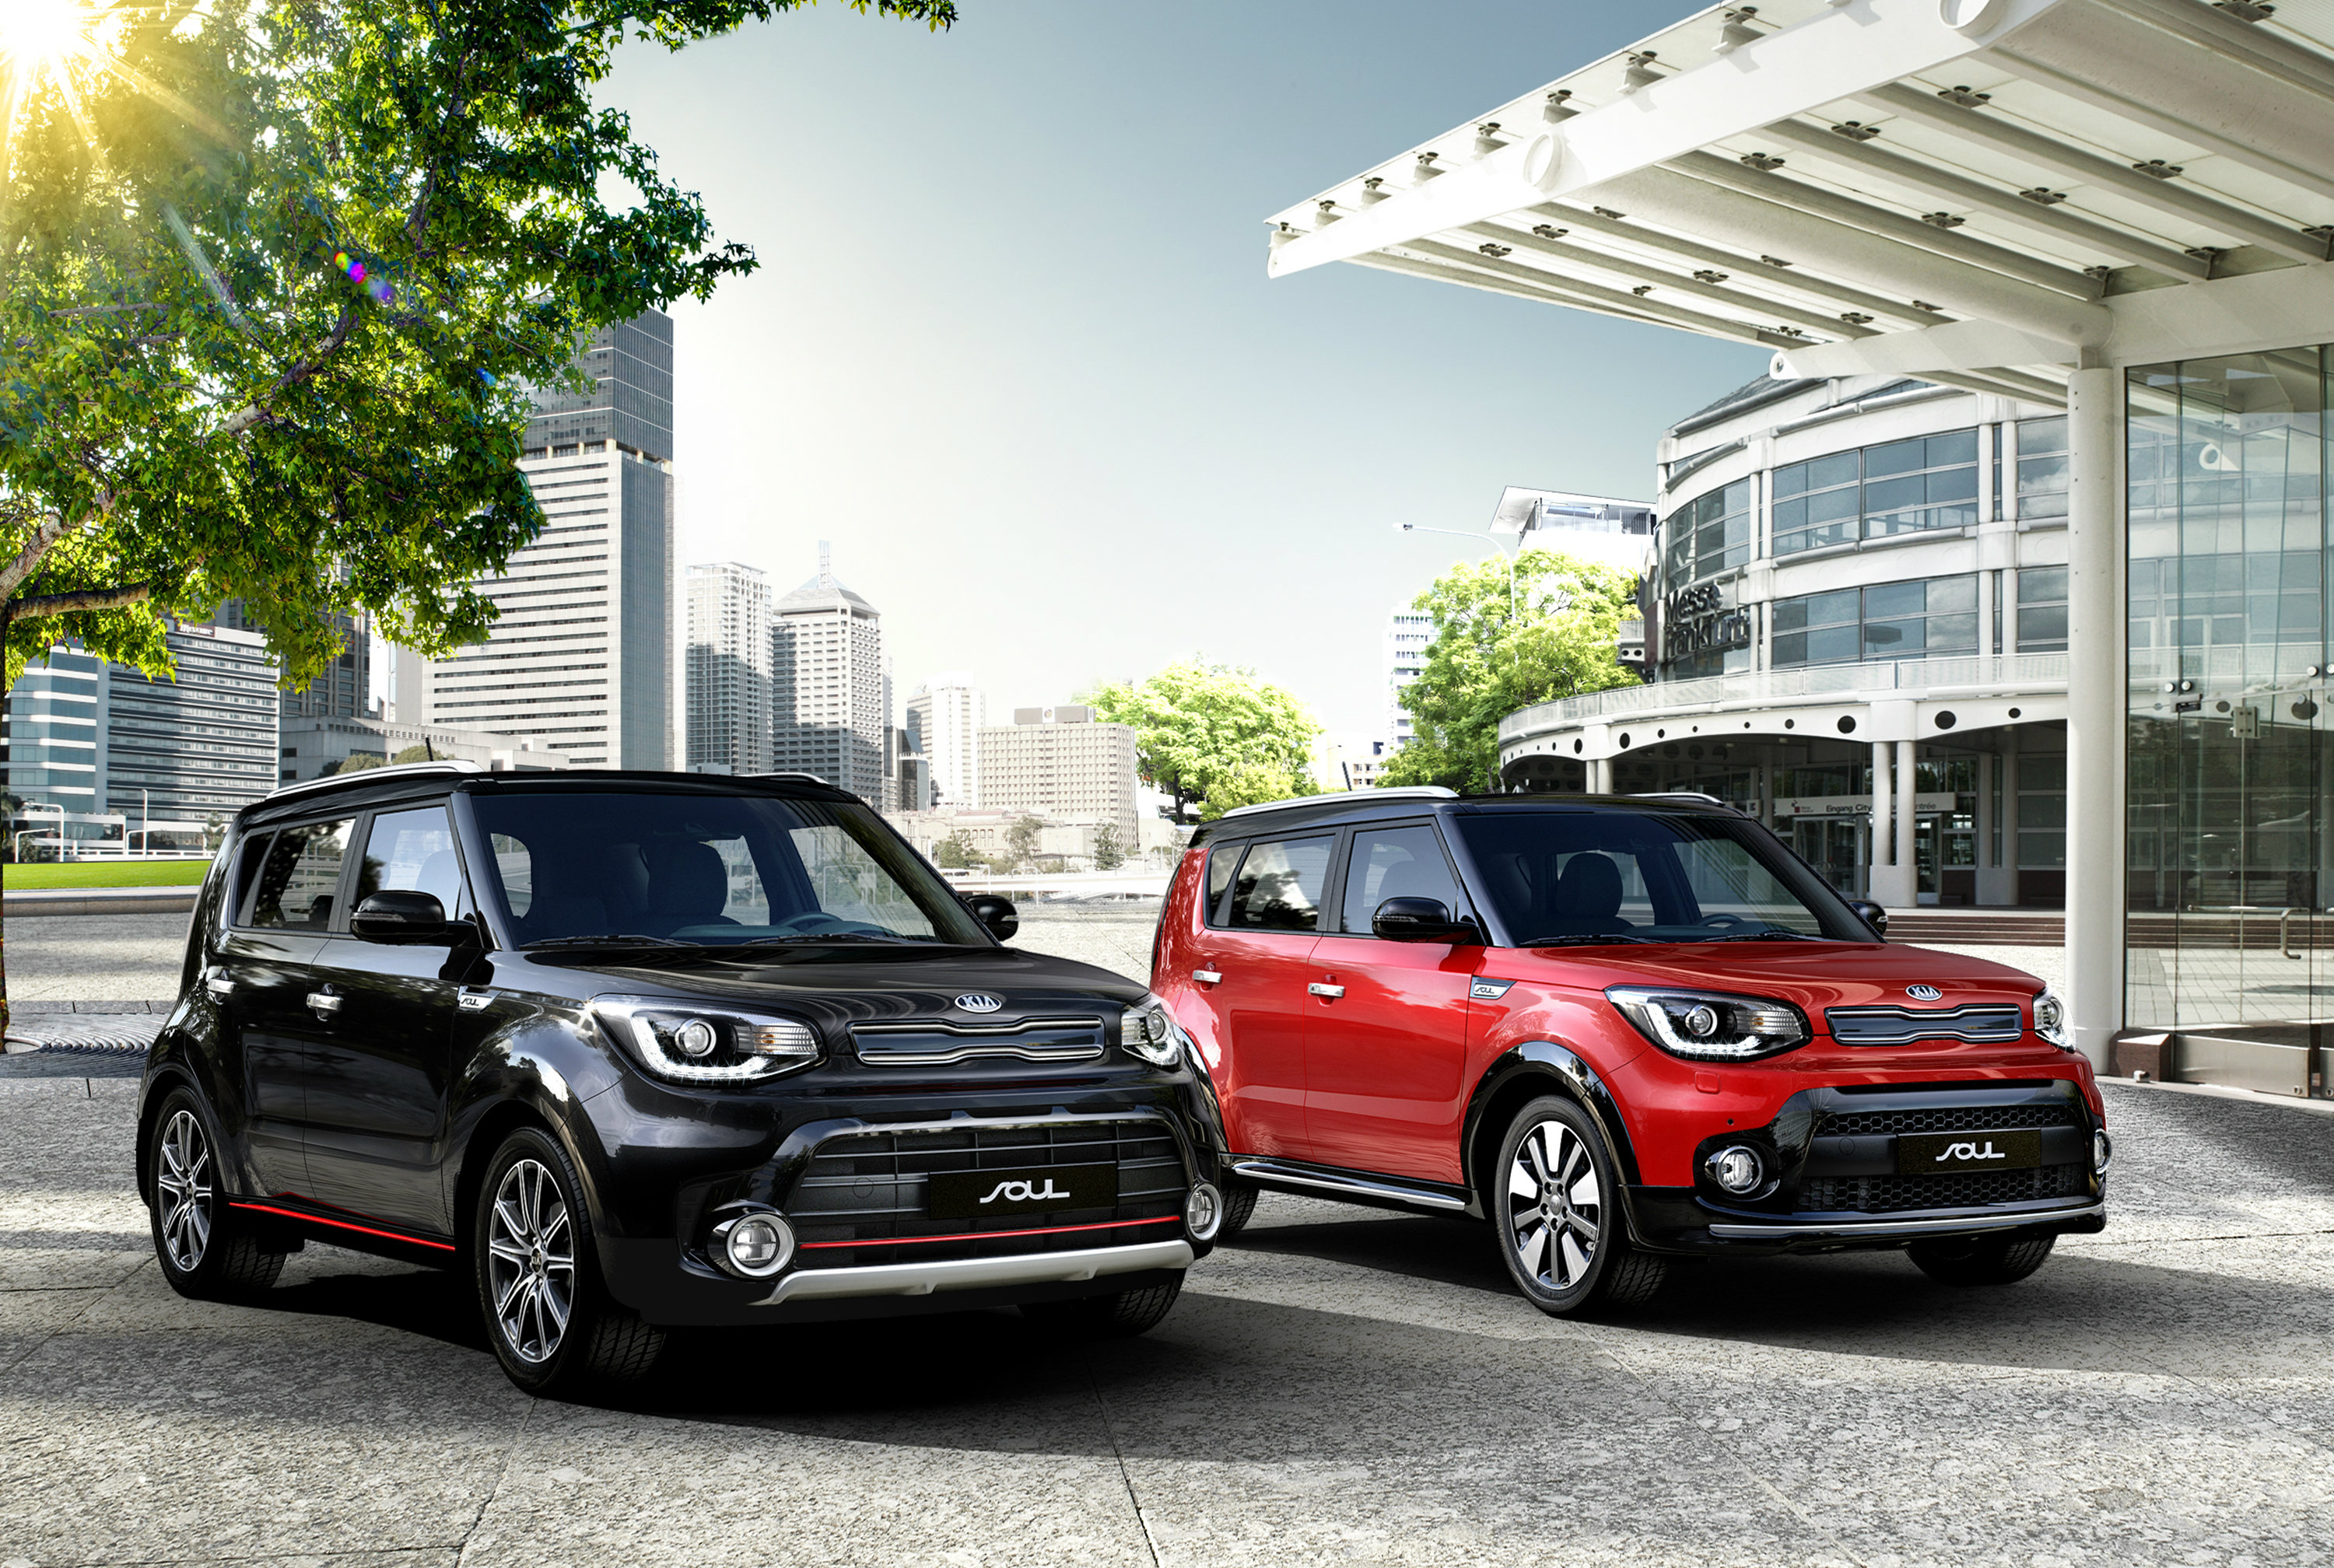 2017 kia soul facelift will make european debut in paris adds 1 6 t gdi engine autoevolution. Black Bedroom Furniture Sets. Home Design Ideas